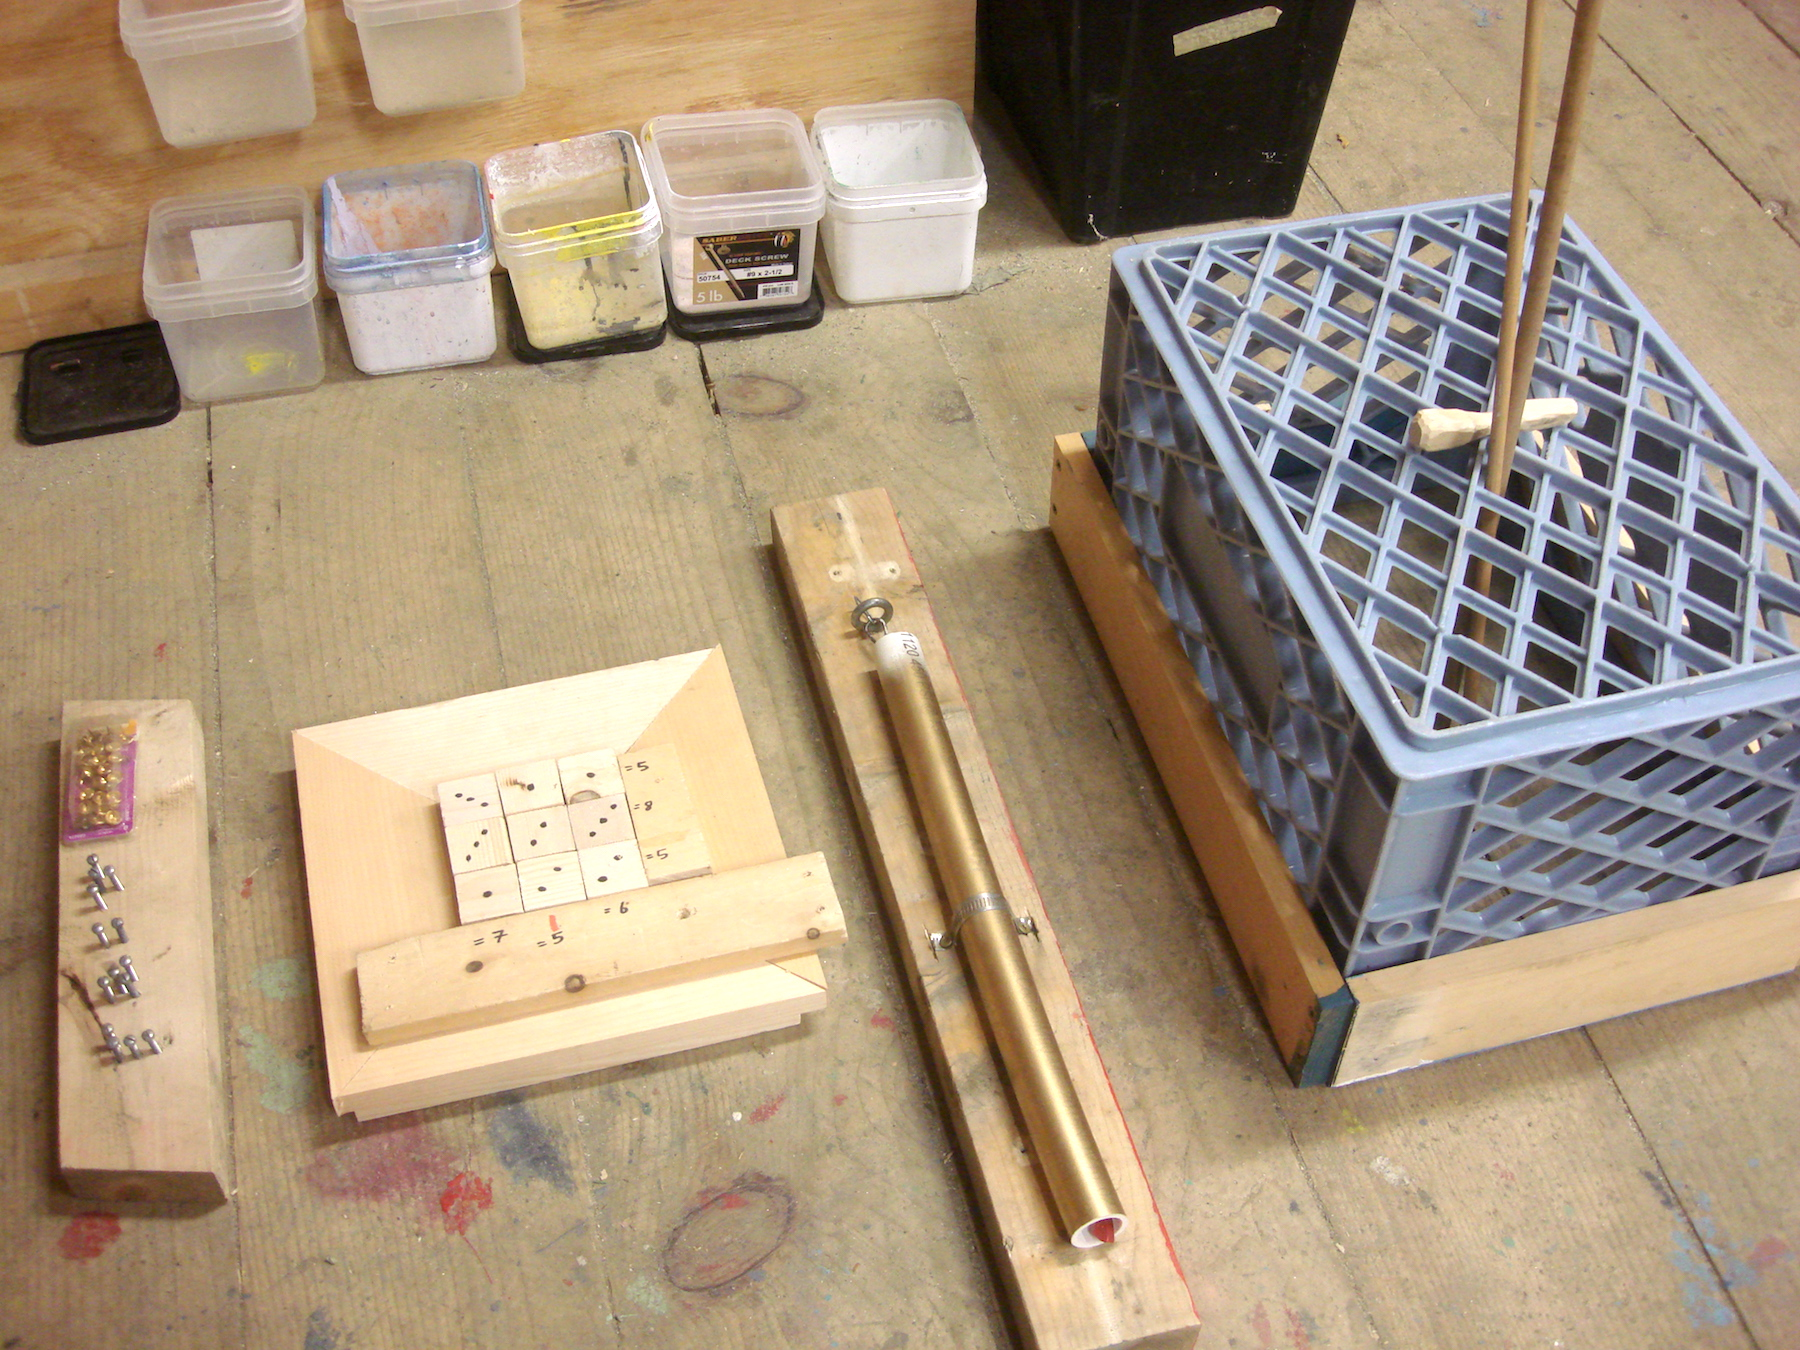 First session accomplishments: sudoku puzzle, crate with dowel chopstick game, and a PVC pipe mount to hide a key.